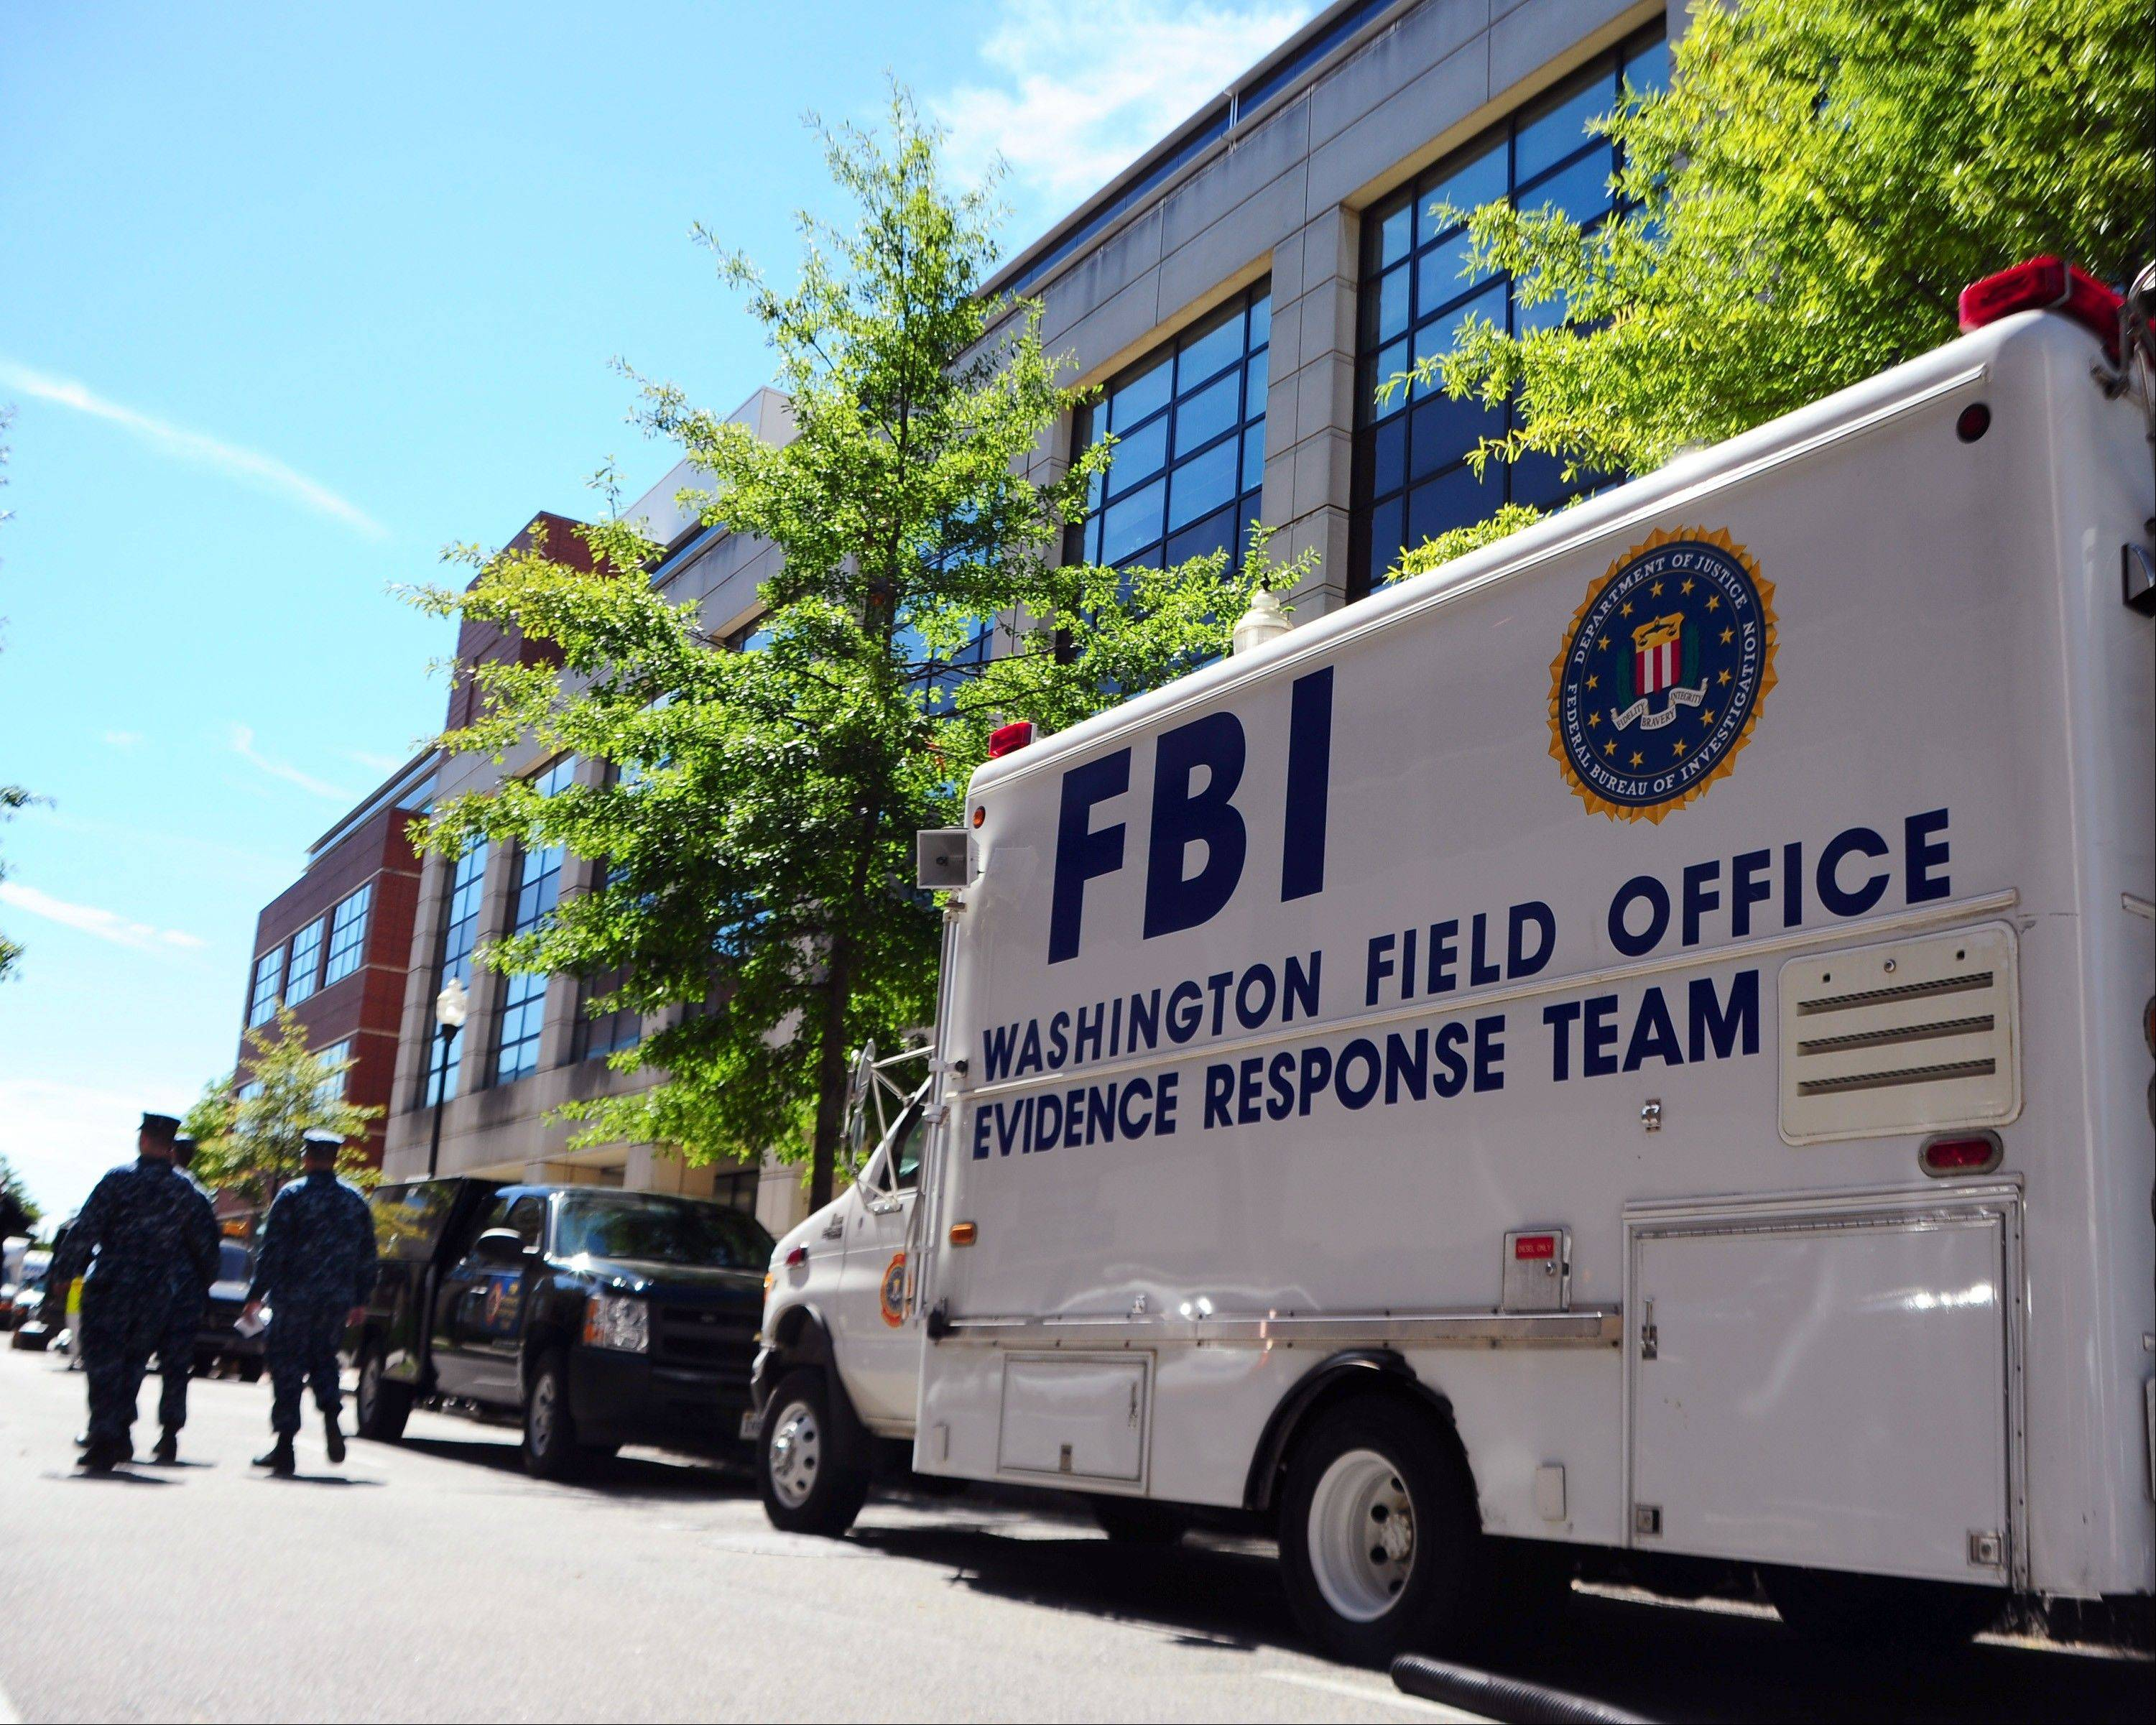 In this photo provided by the U.S. Navy, an FBI evidence response team vehicle is parked outside Building 197 at the Navy Yard in Washington as evidence is collected Wednesday, Sept. 18, 2013. A gunman killed 12 people at the base on Monday, Sept. 16, 2013.